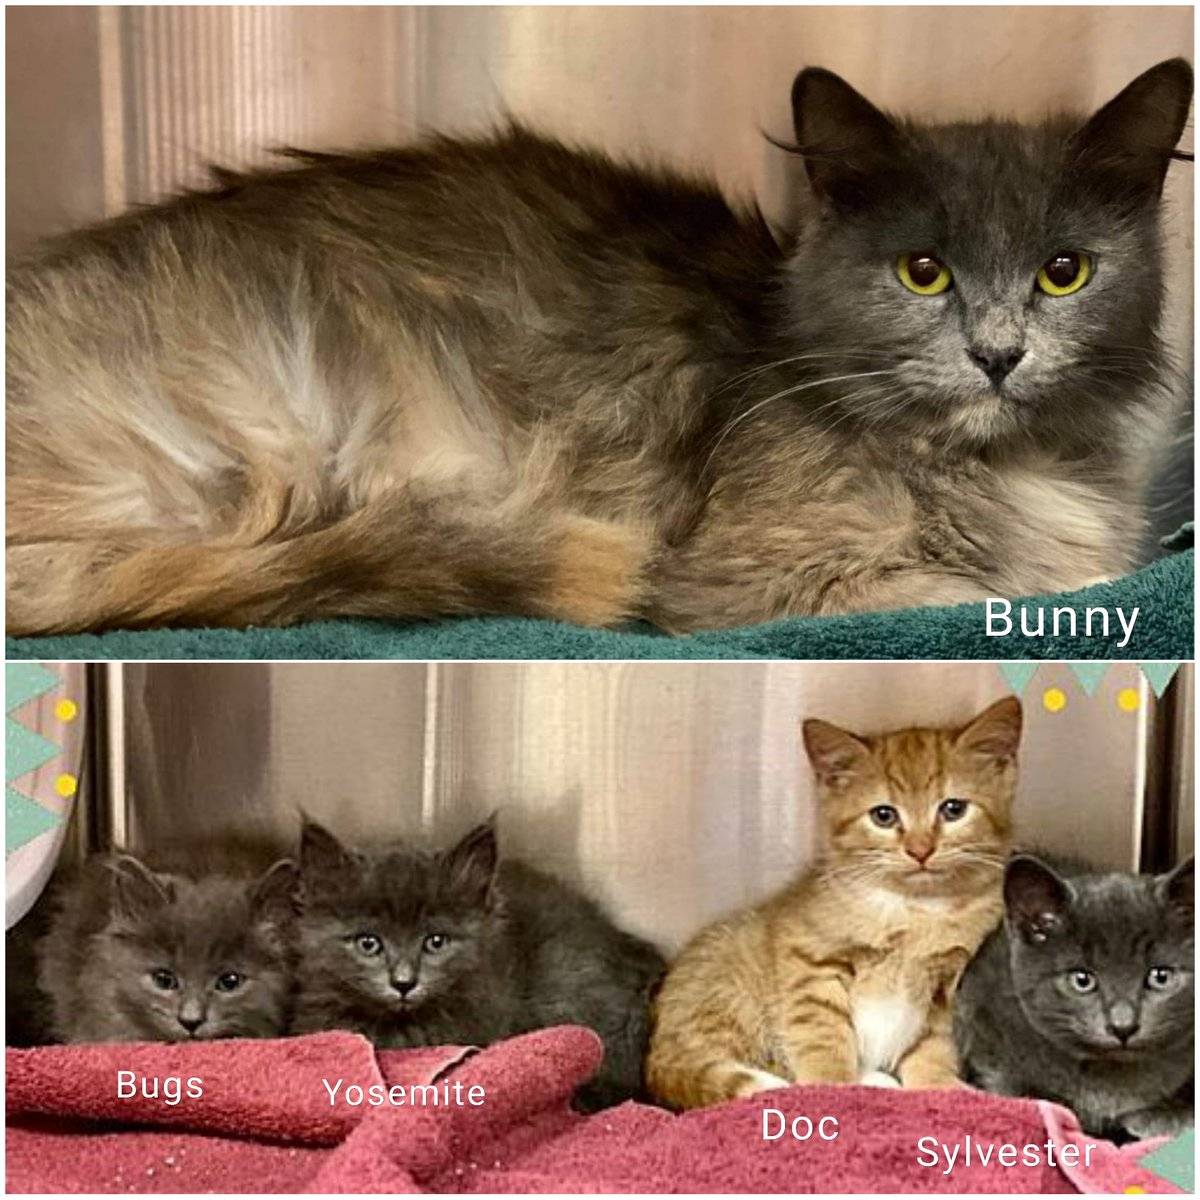 """Lovely muted calico """"Bunny"""" ID 629964 & 4 adorable kittens (all boys) Bugs ID 629943, Yosemite ID 629942, Doc ID 629941 & Sylvester ID 629940 need adoption/rescue! Phone to arrange a meet at (770) 499-4136 or online (link below)! Pledge for rescue! URGENT! https://t.co/6oWv3aQjA2 https://t.co/L4bnTsJtHt"""